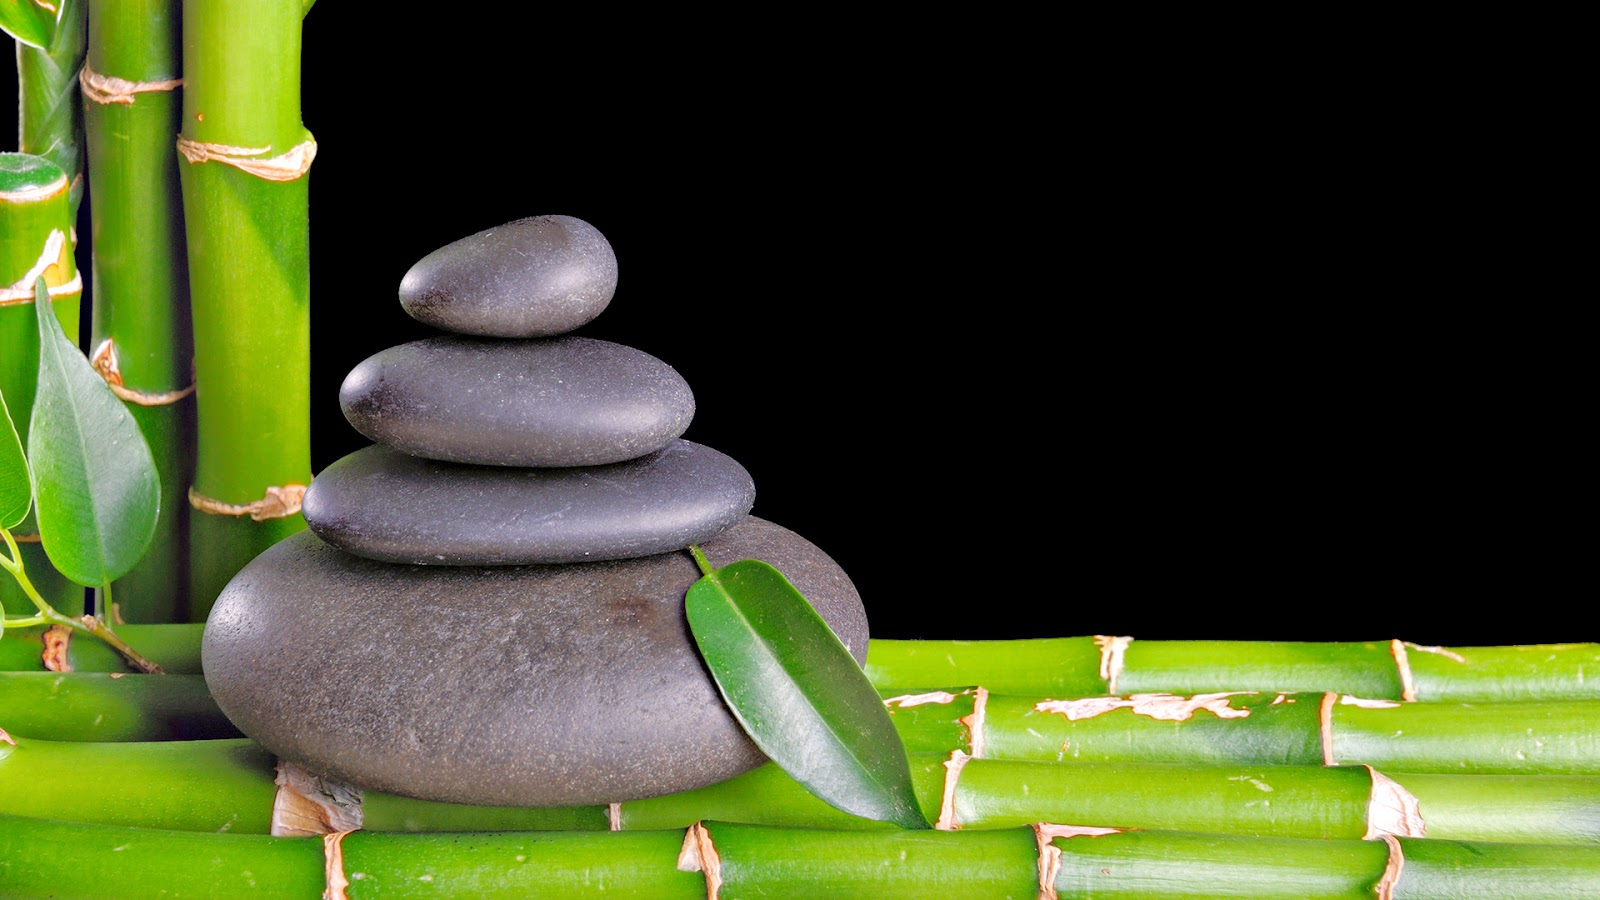 Bamboo and zen stones wallpaper | Wallpaper Wide HD